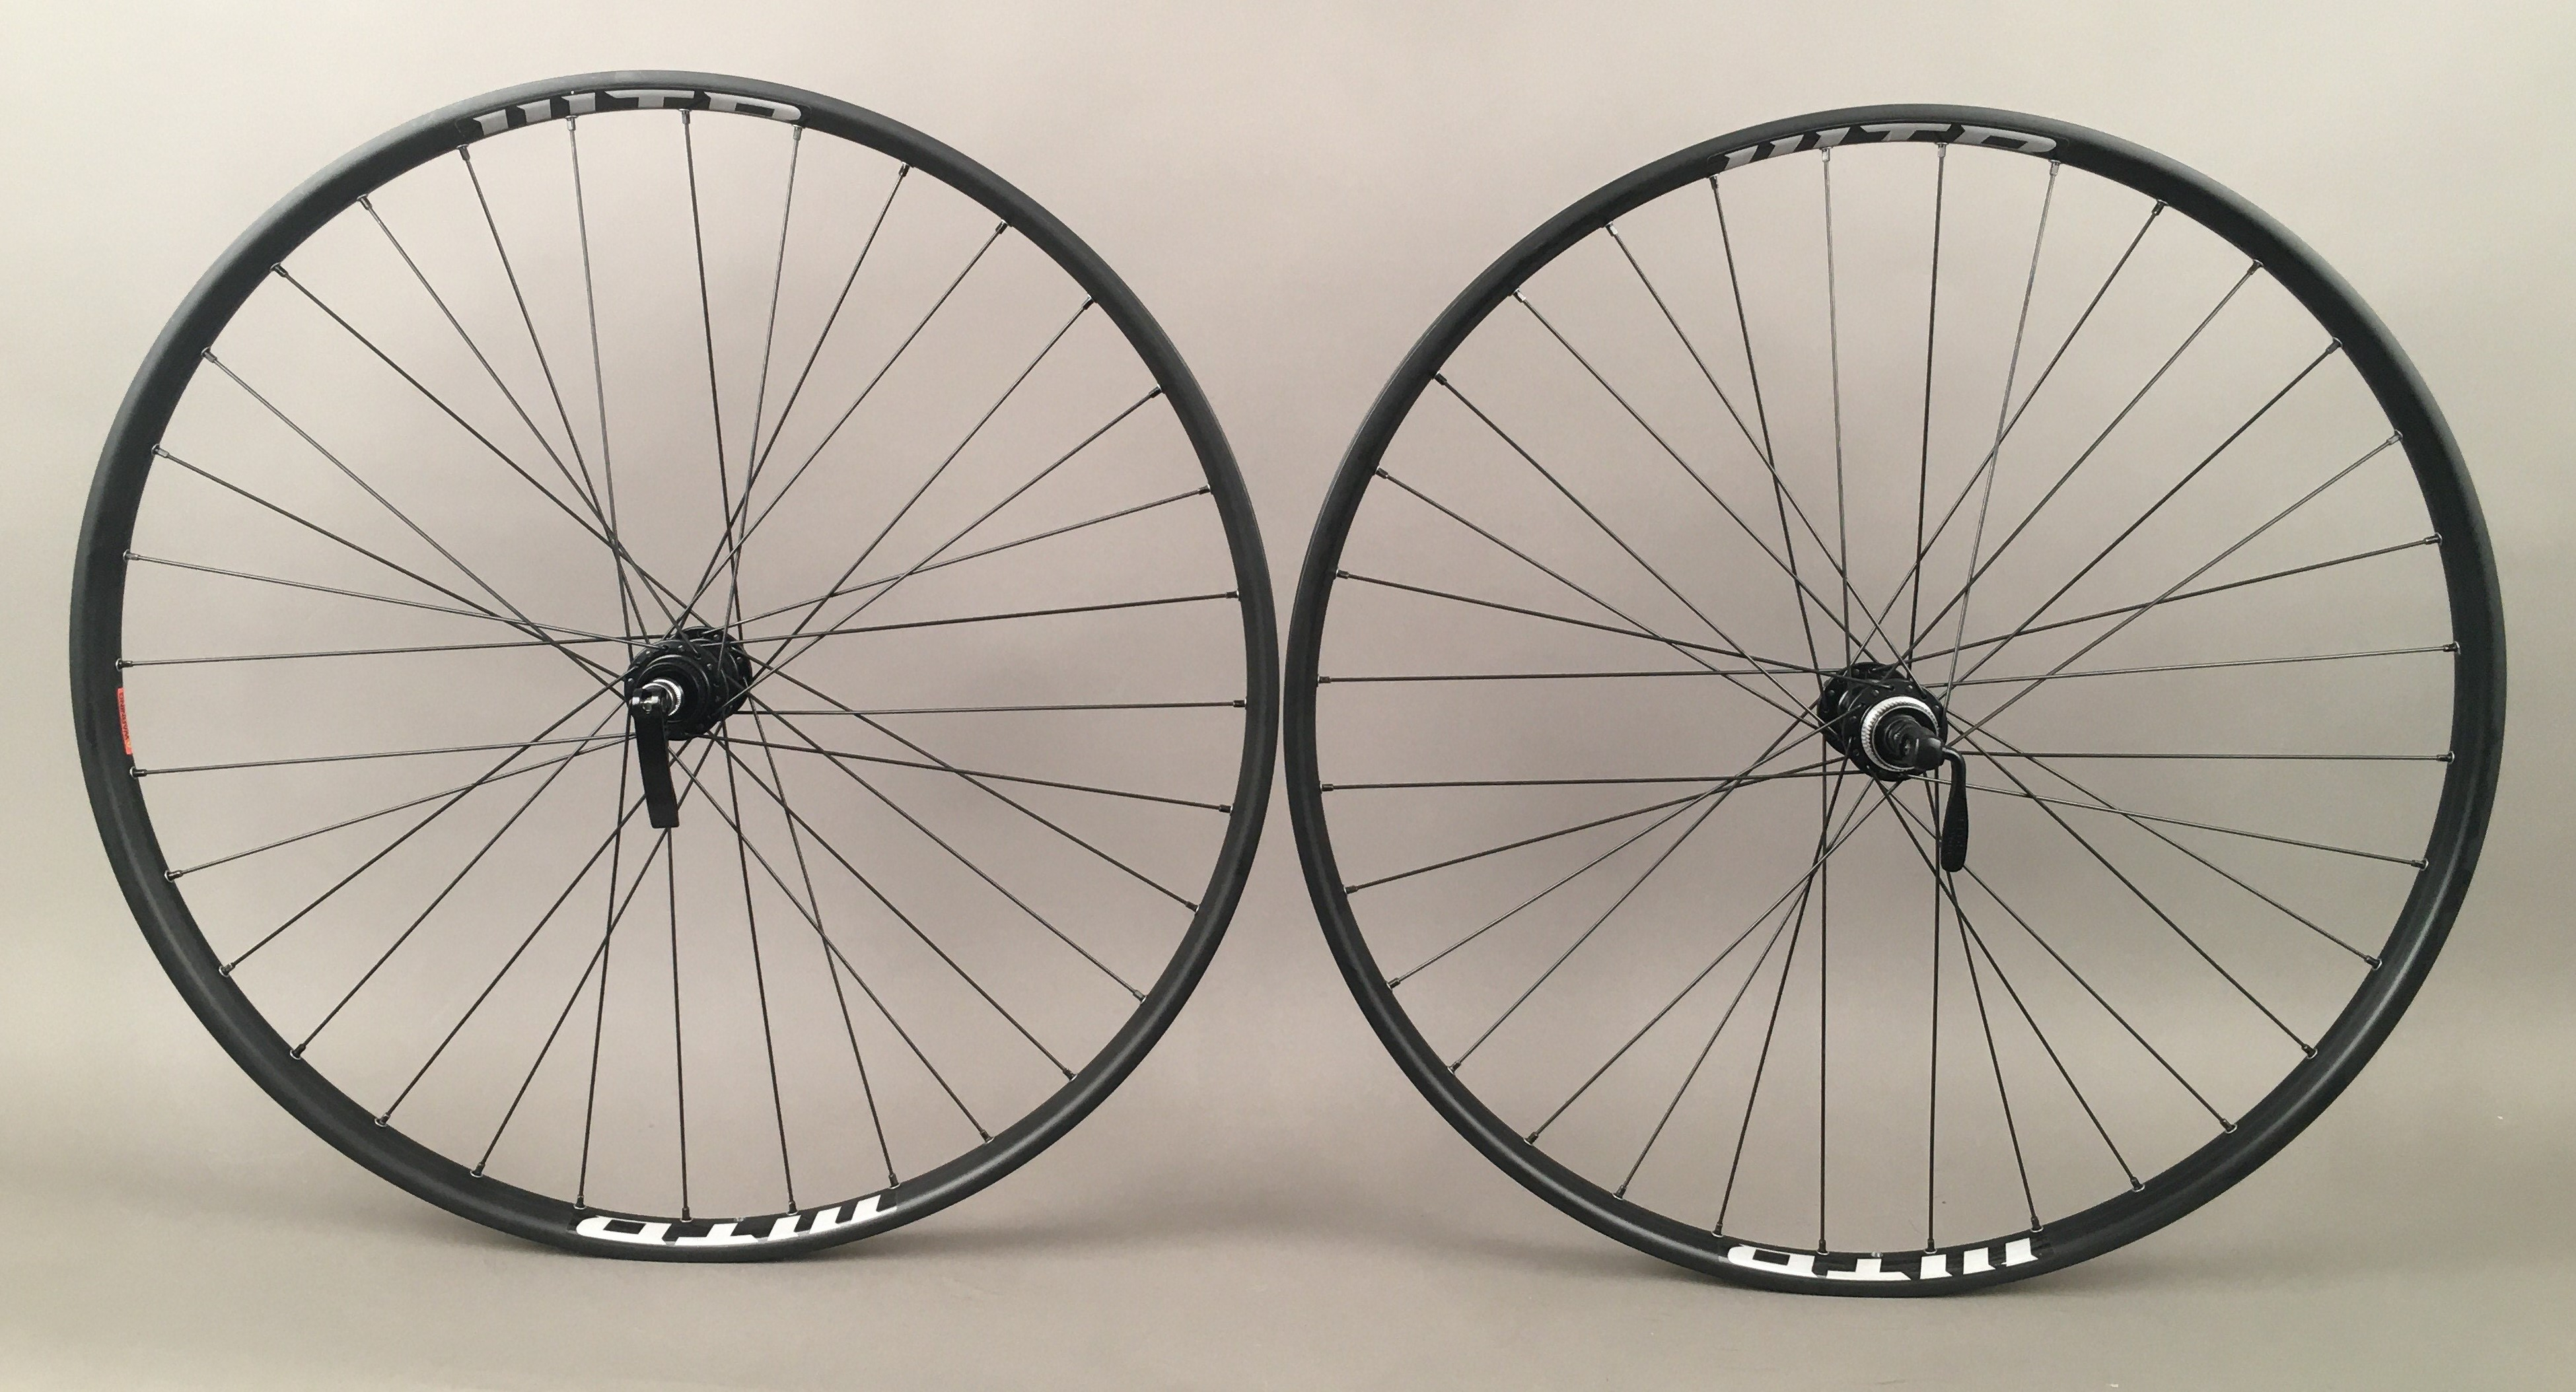 WTB I29 29er MTB Wheelset Thru Axle or Quick Release Hubs